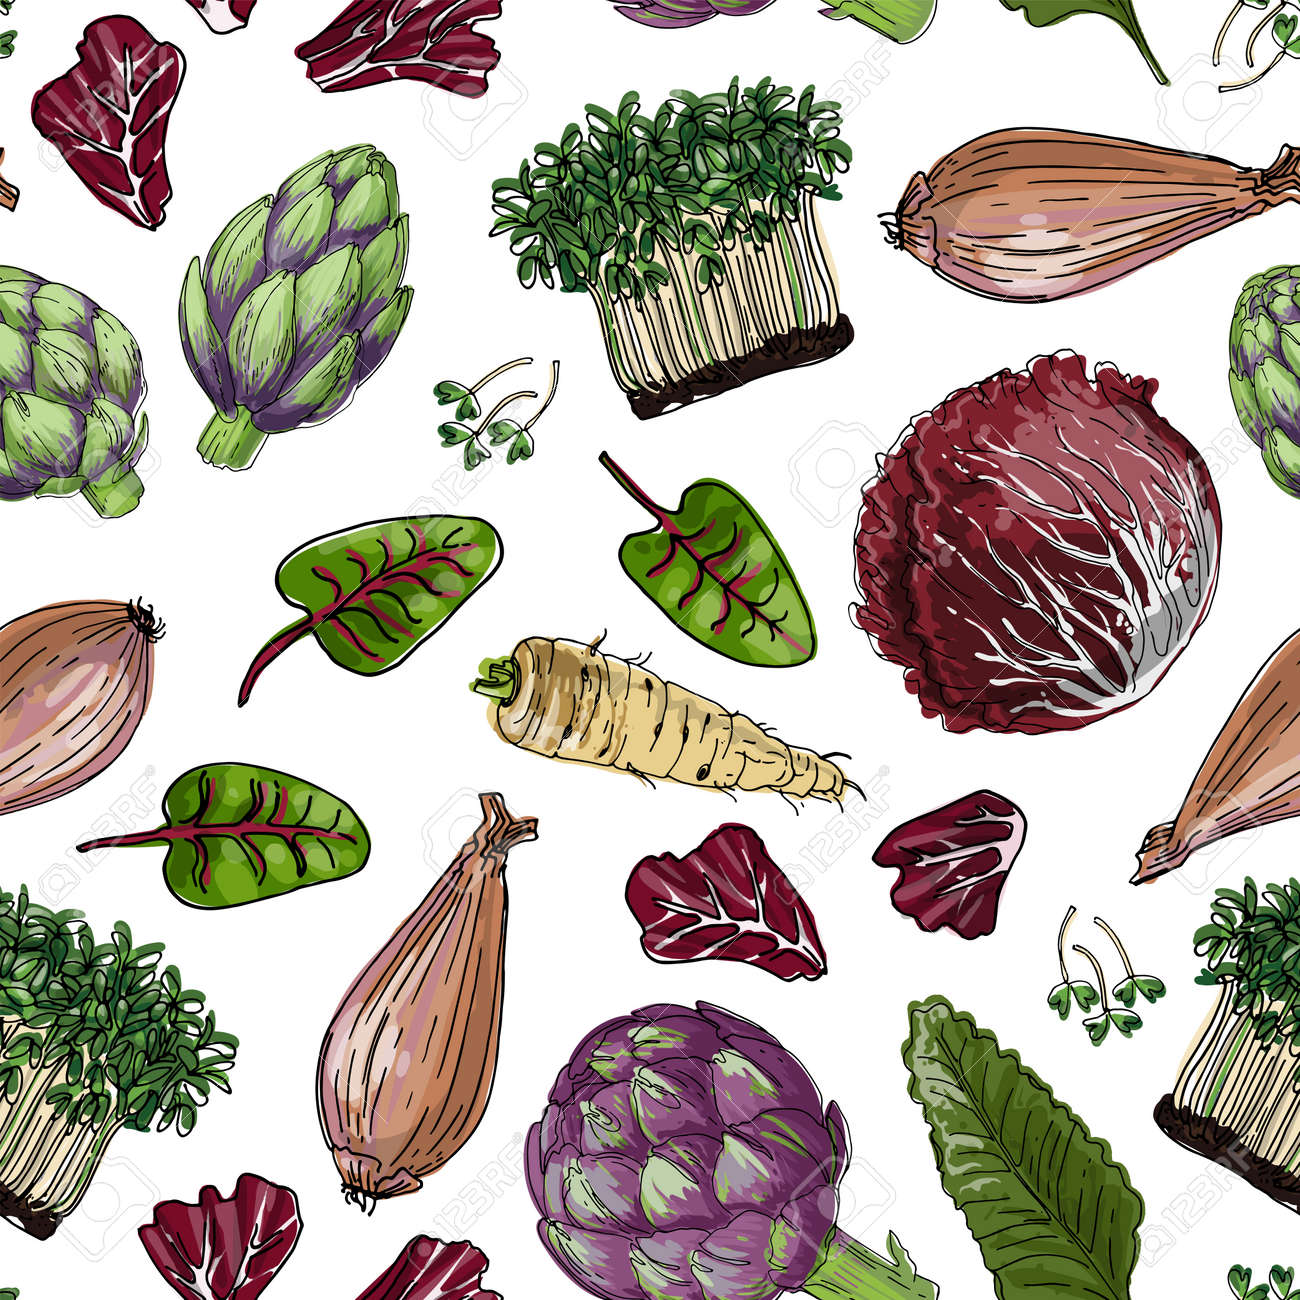 Seampless pattern vector color food. Vegetables, paprika, cucumbers, olives - 171951930